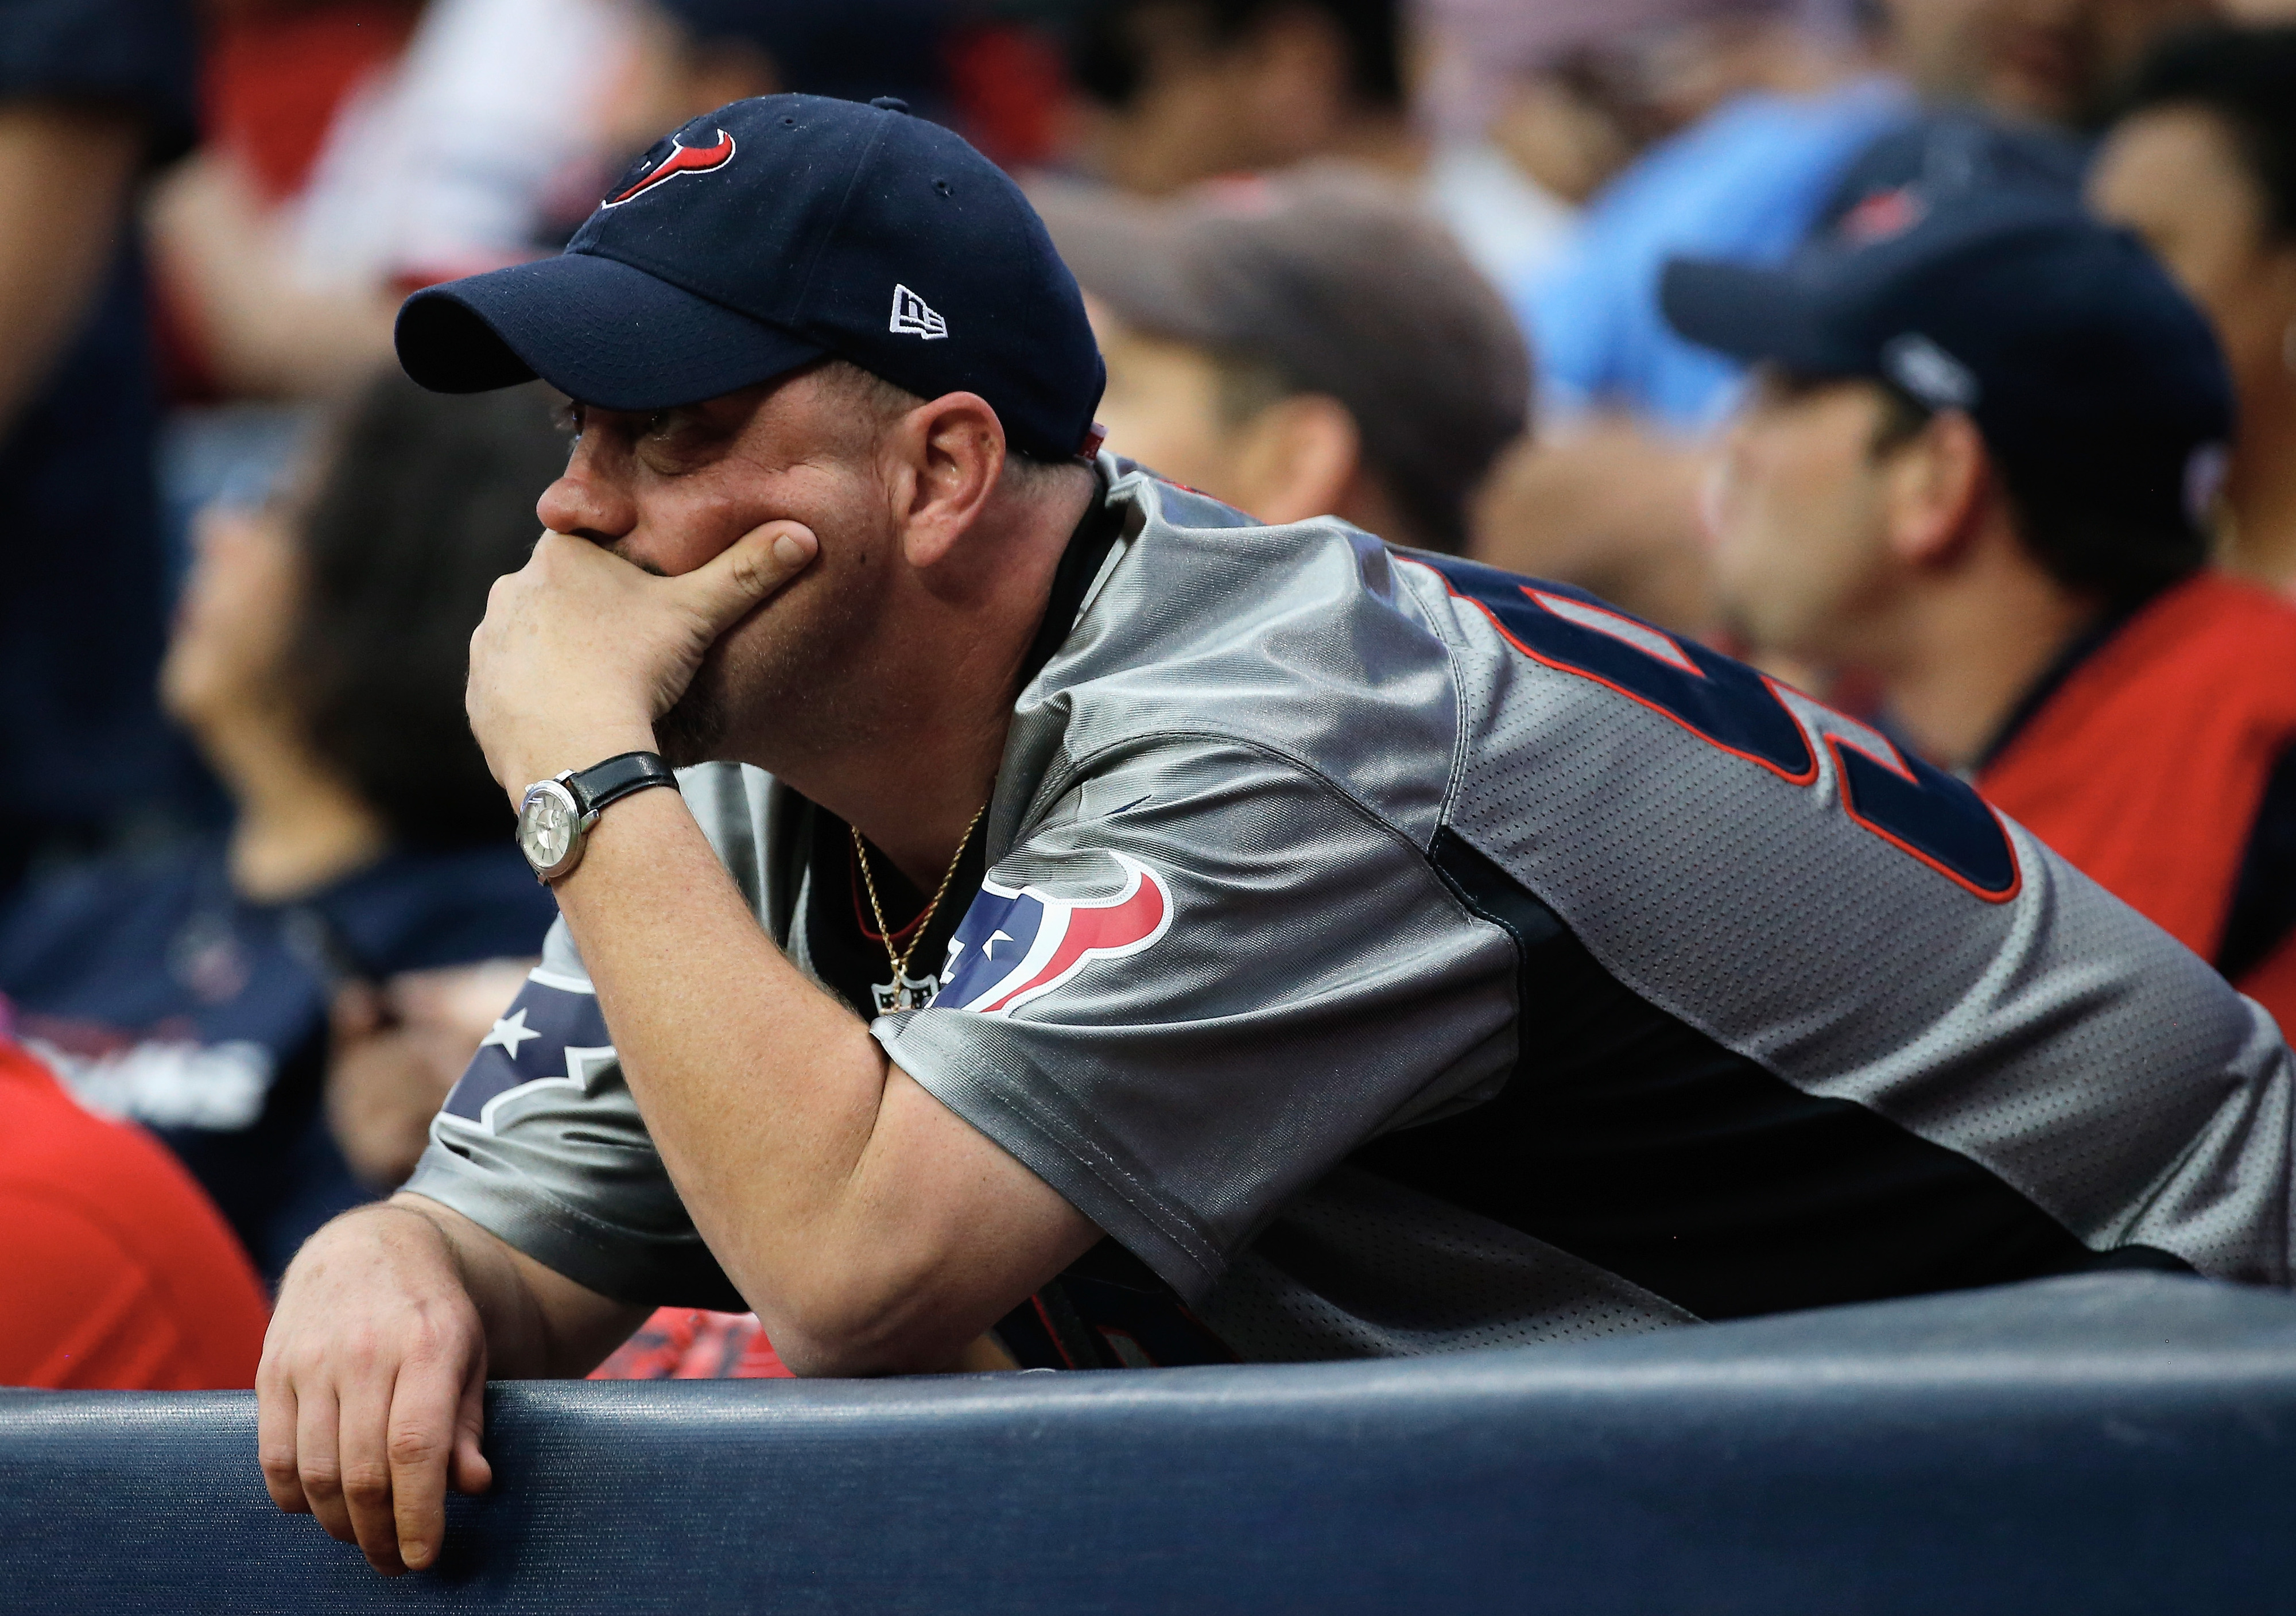 The face of Texans fandom these days.